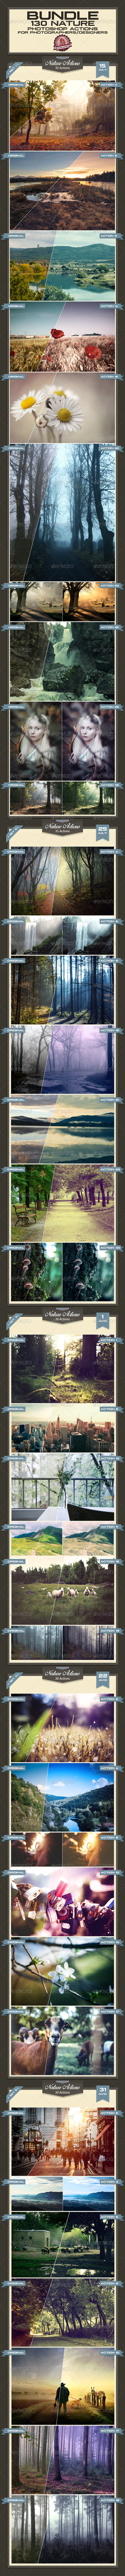 GraphicRiver Nature Photoshop Actions Bundle 8779857